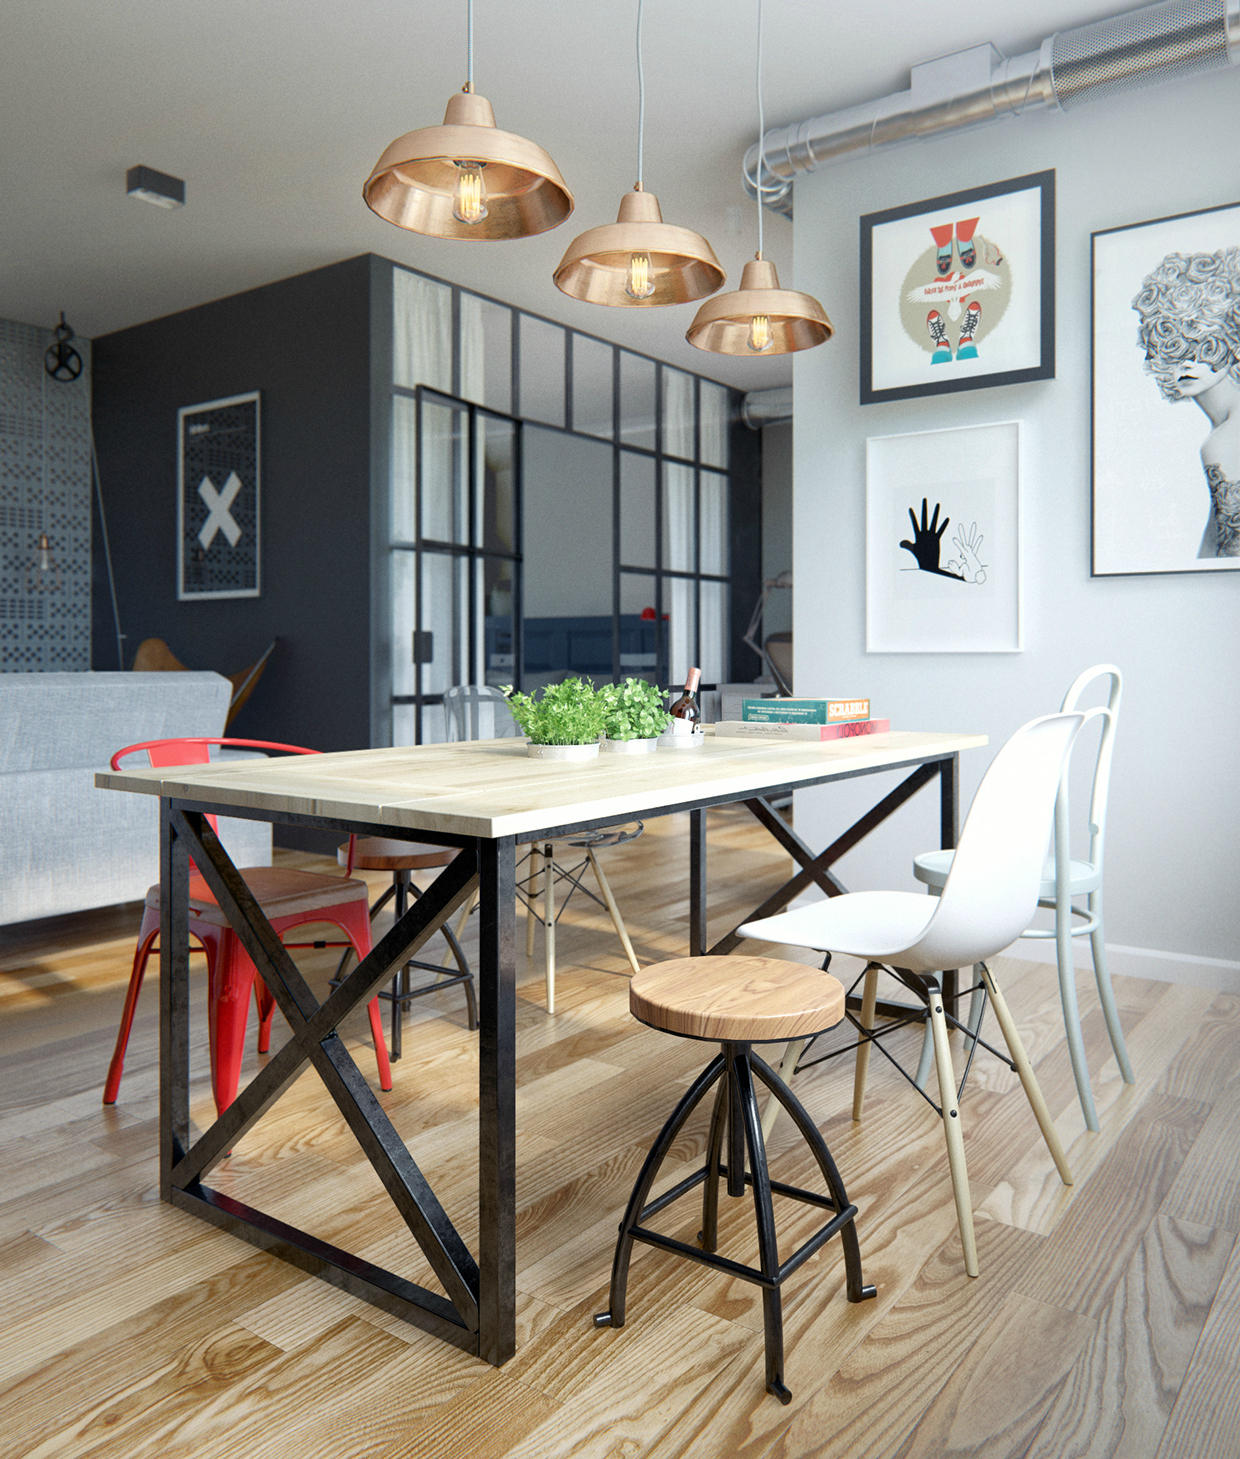 10 Ideas To Create A Trendy Industrial Dining Room Decor dining room design 10 Ideas To Create A Trendy Industrial Dining Room Design 10 Ideas To Create A Trendy Industrial Dining Room Design 9